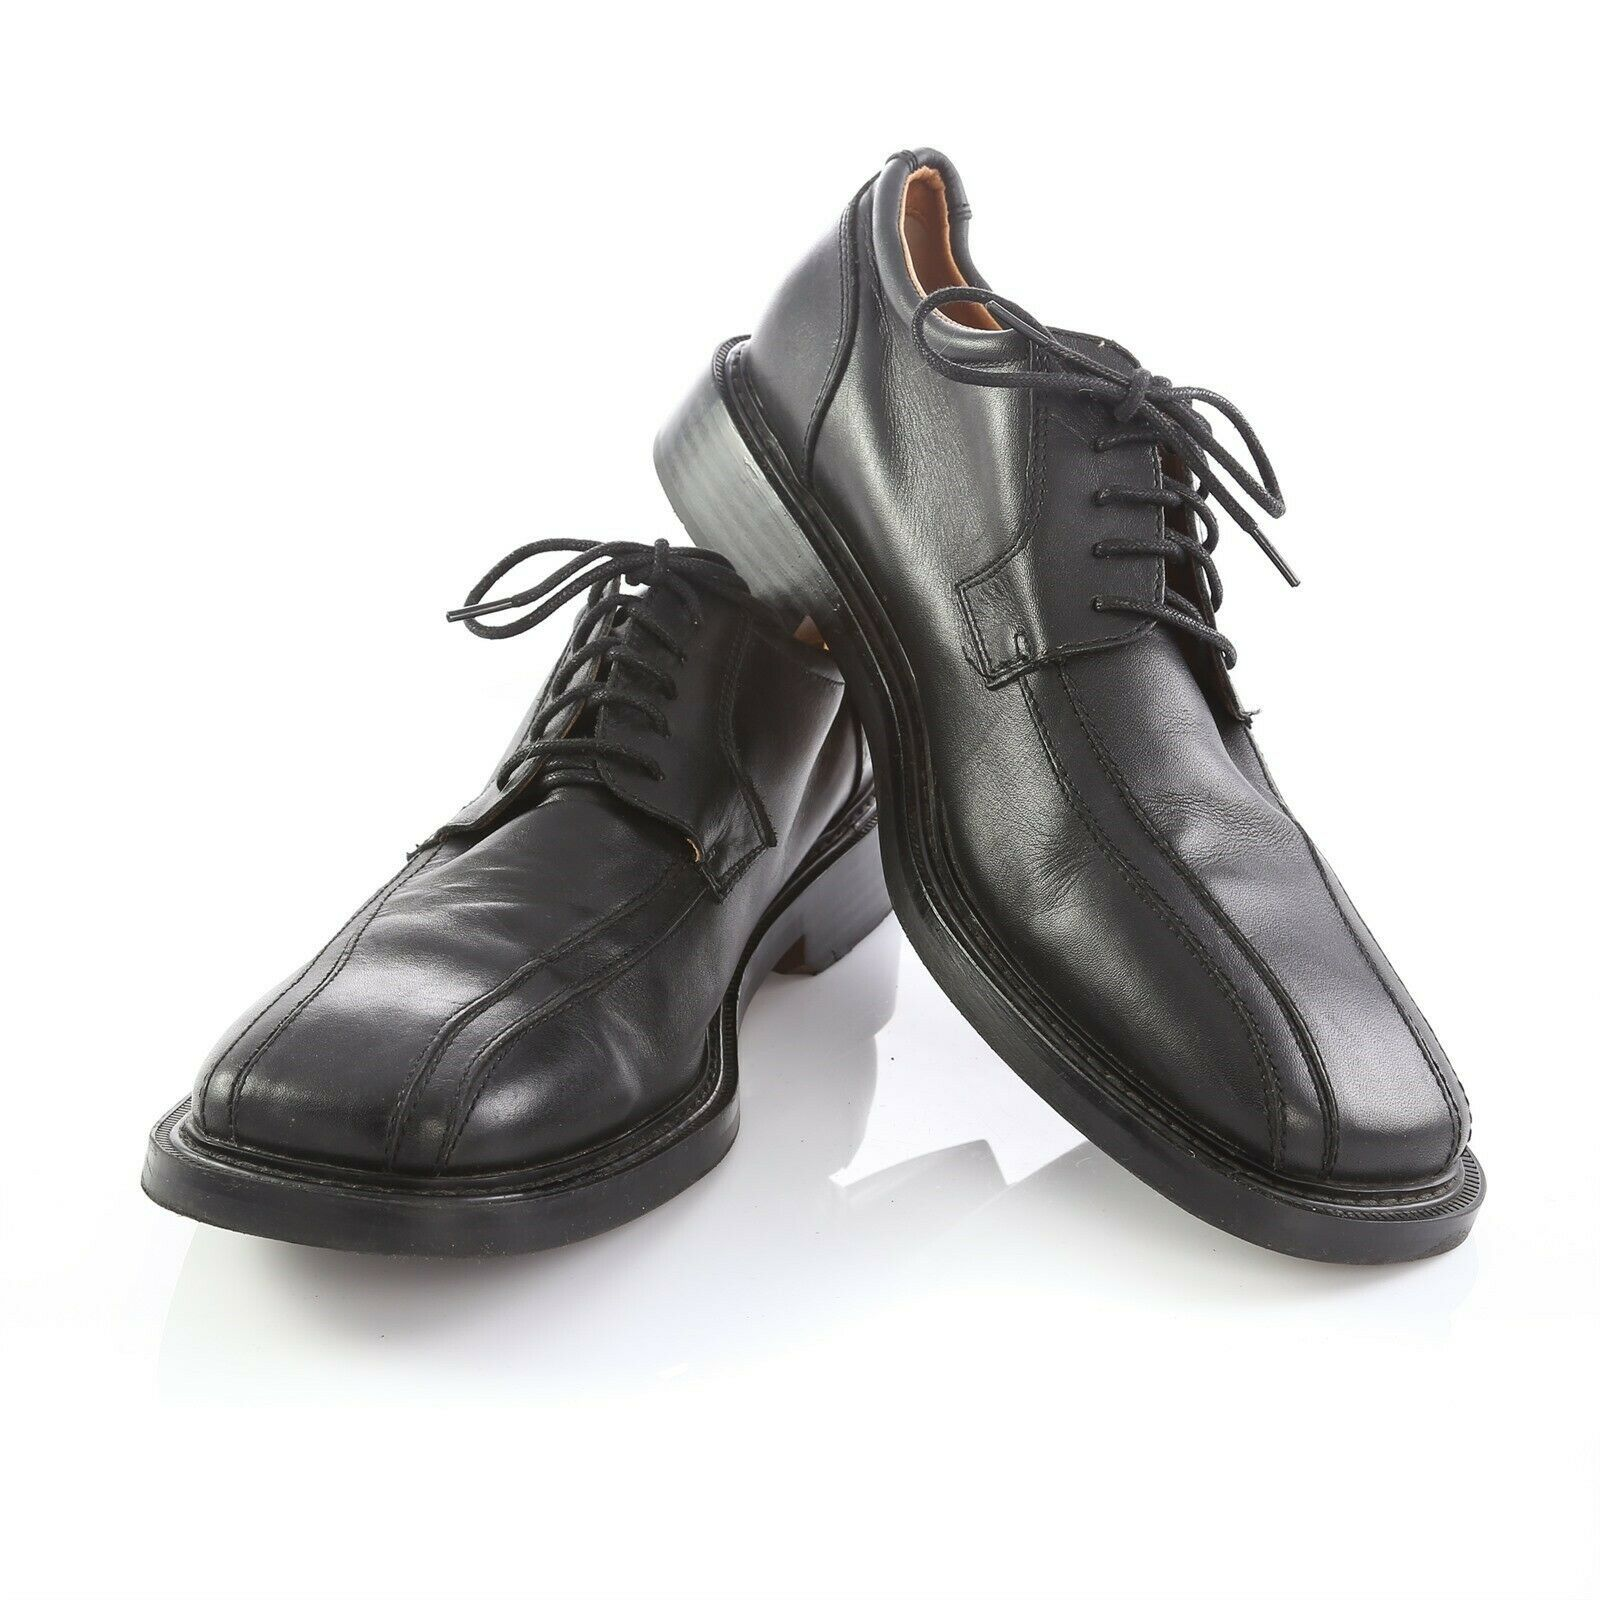 Skechers Collection Black Leather Bicycle Toe Derby Oxford Shoes Mens 12 - $39.52